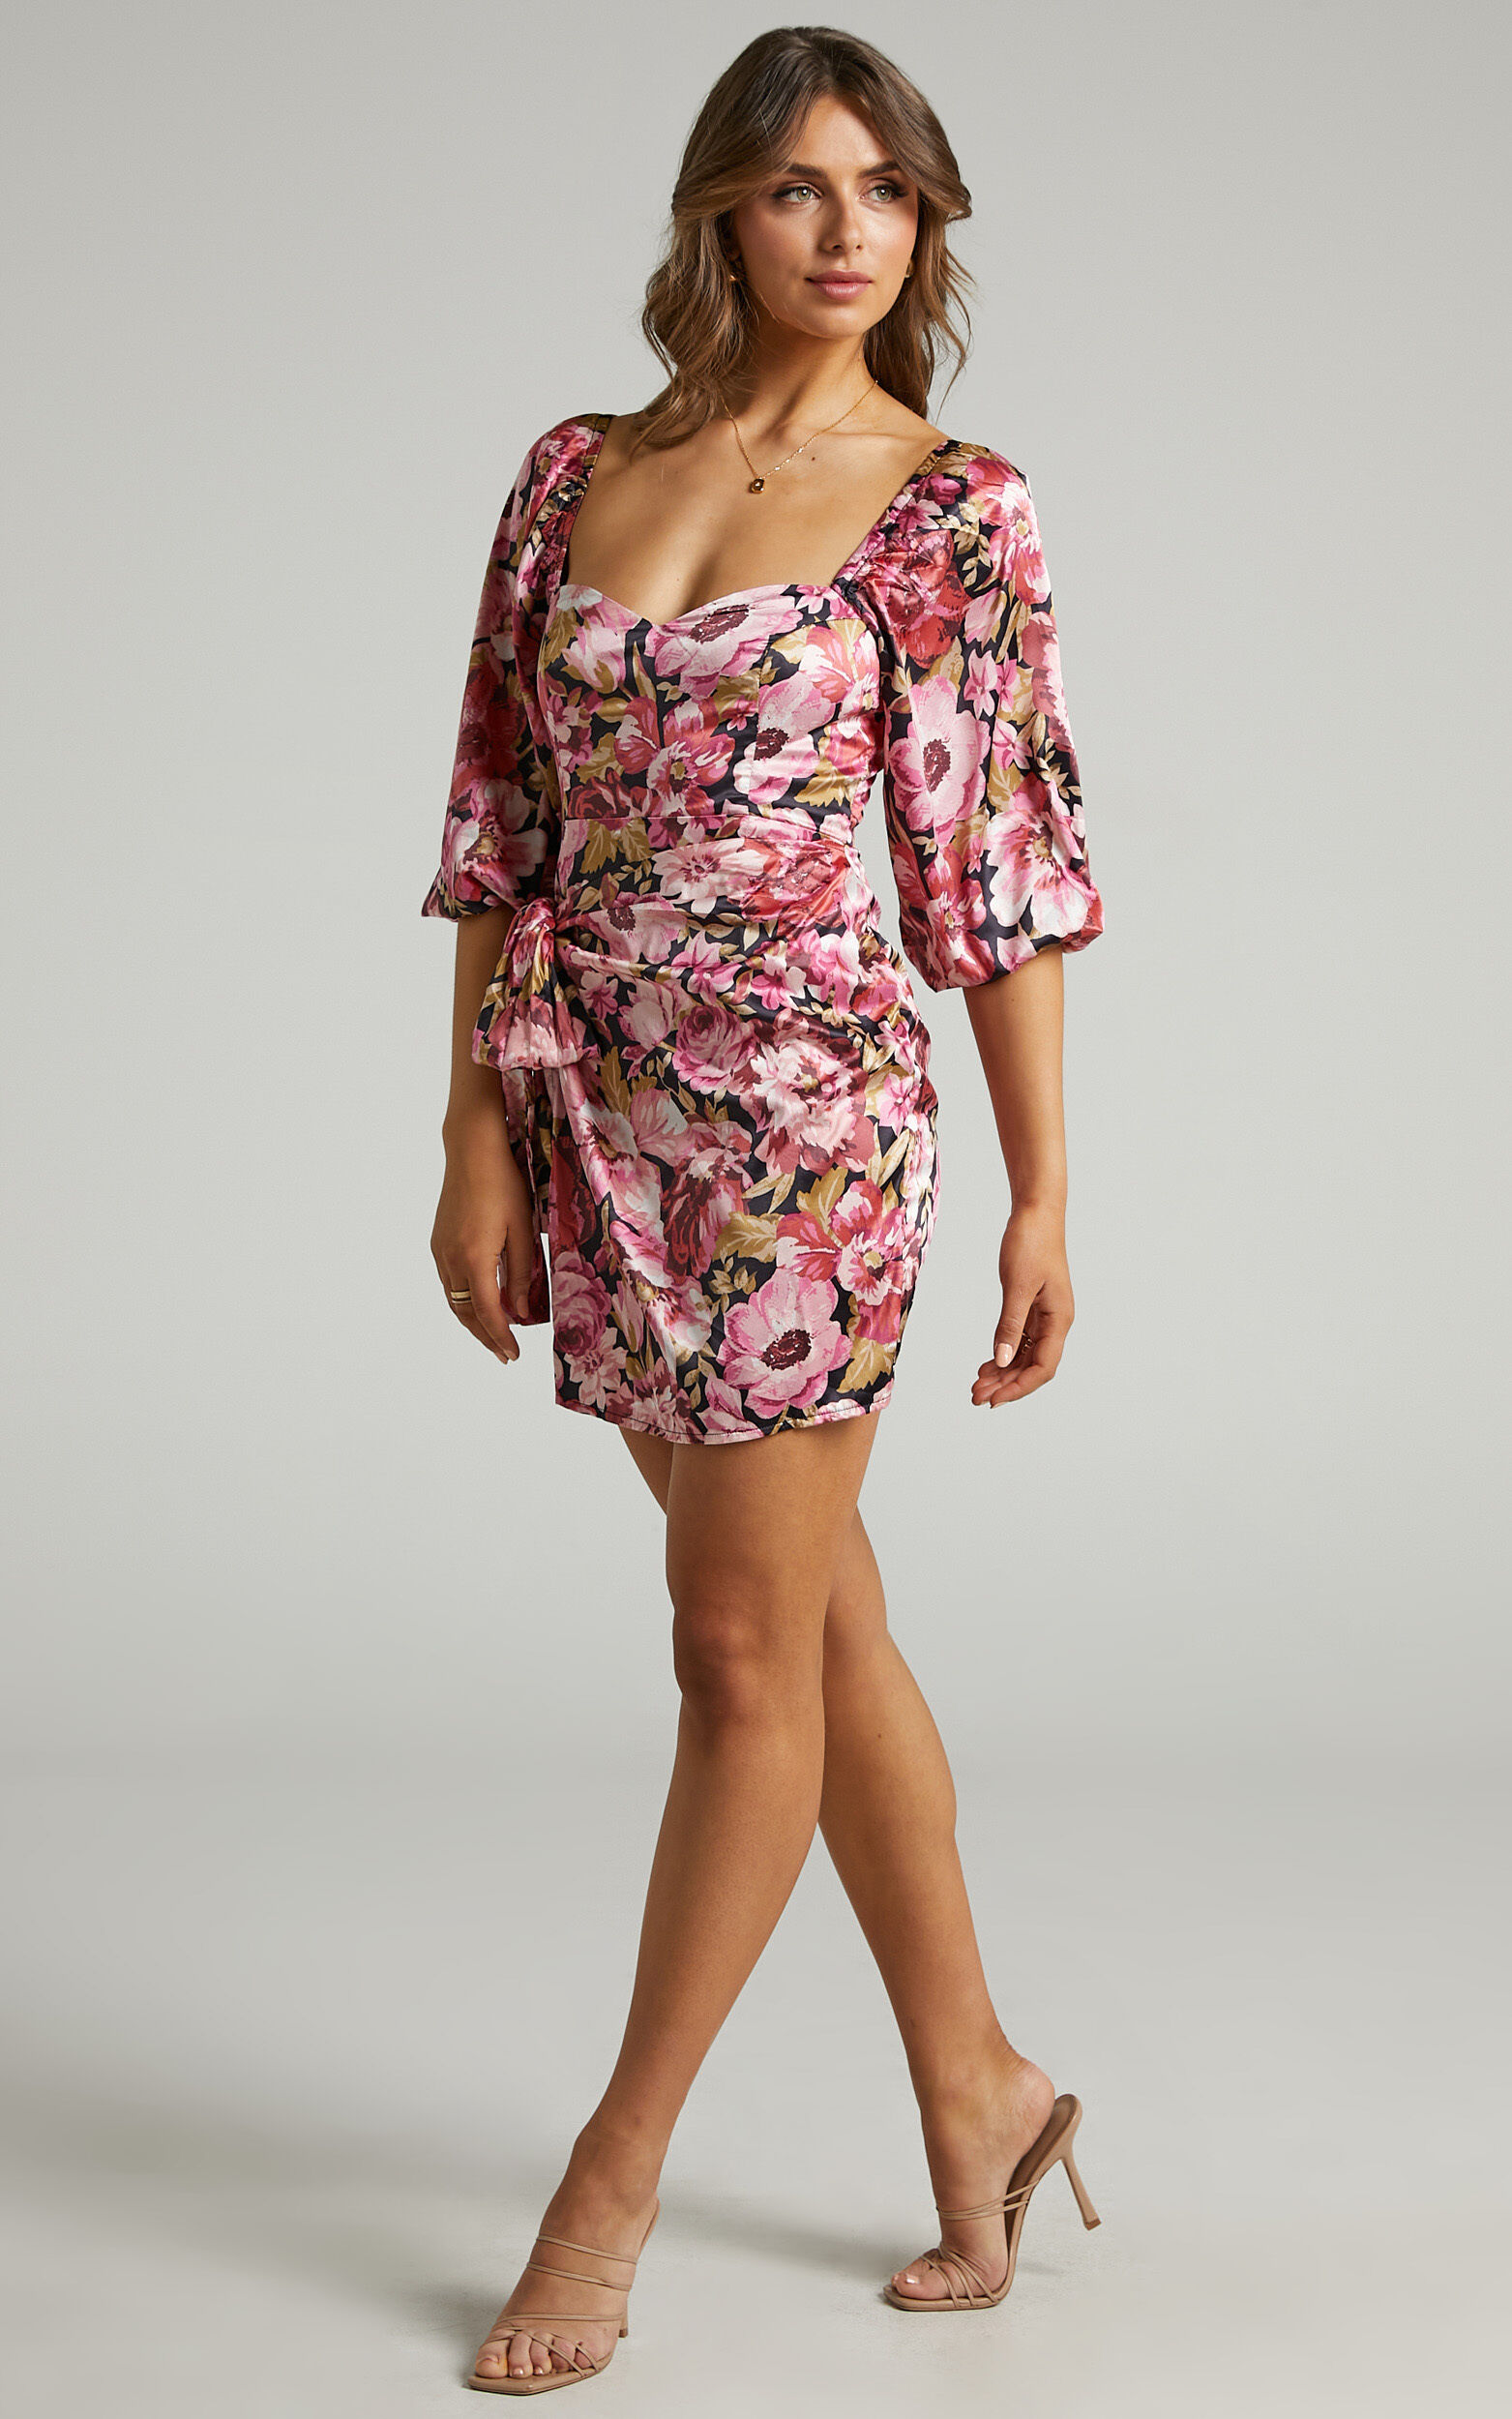 Chloie Puff Sleeve Drape Mini Dress in Boudoir Blooms - 06, ORG1, super-hi-res image number null